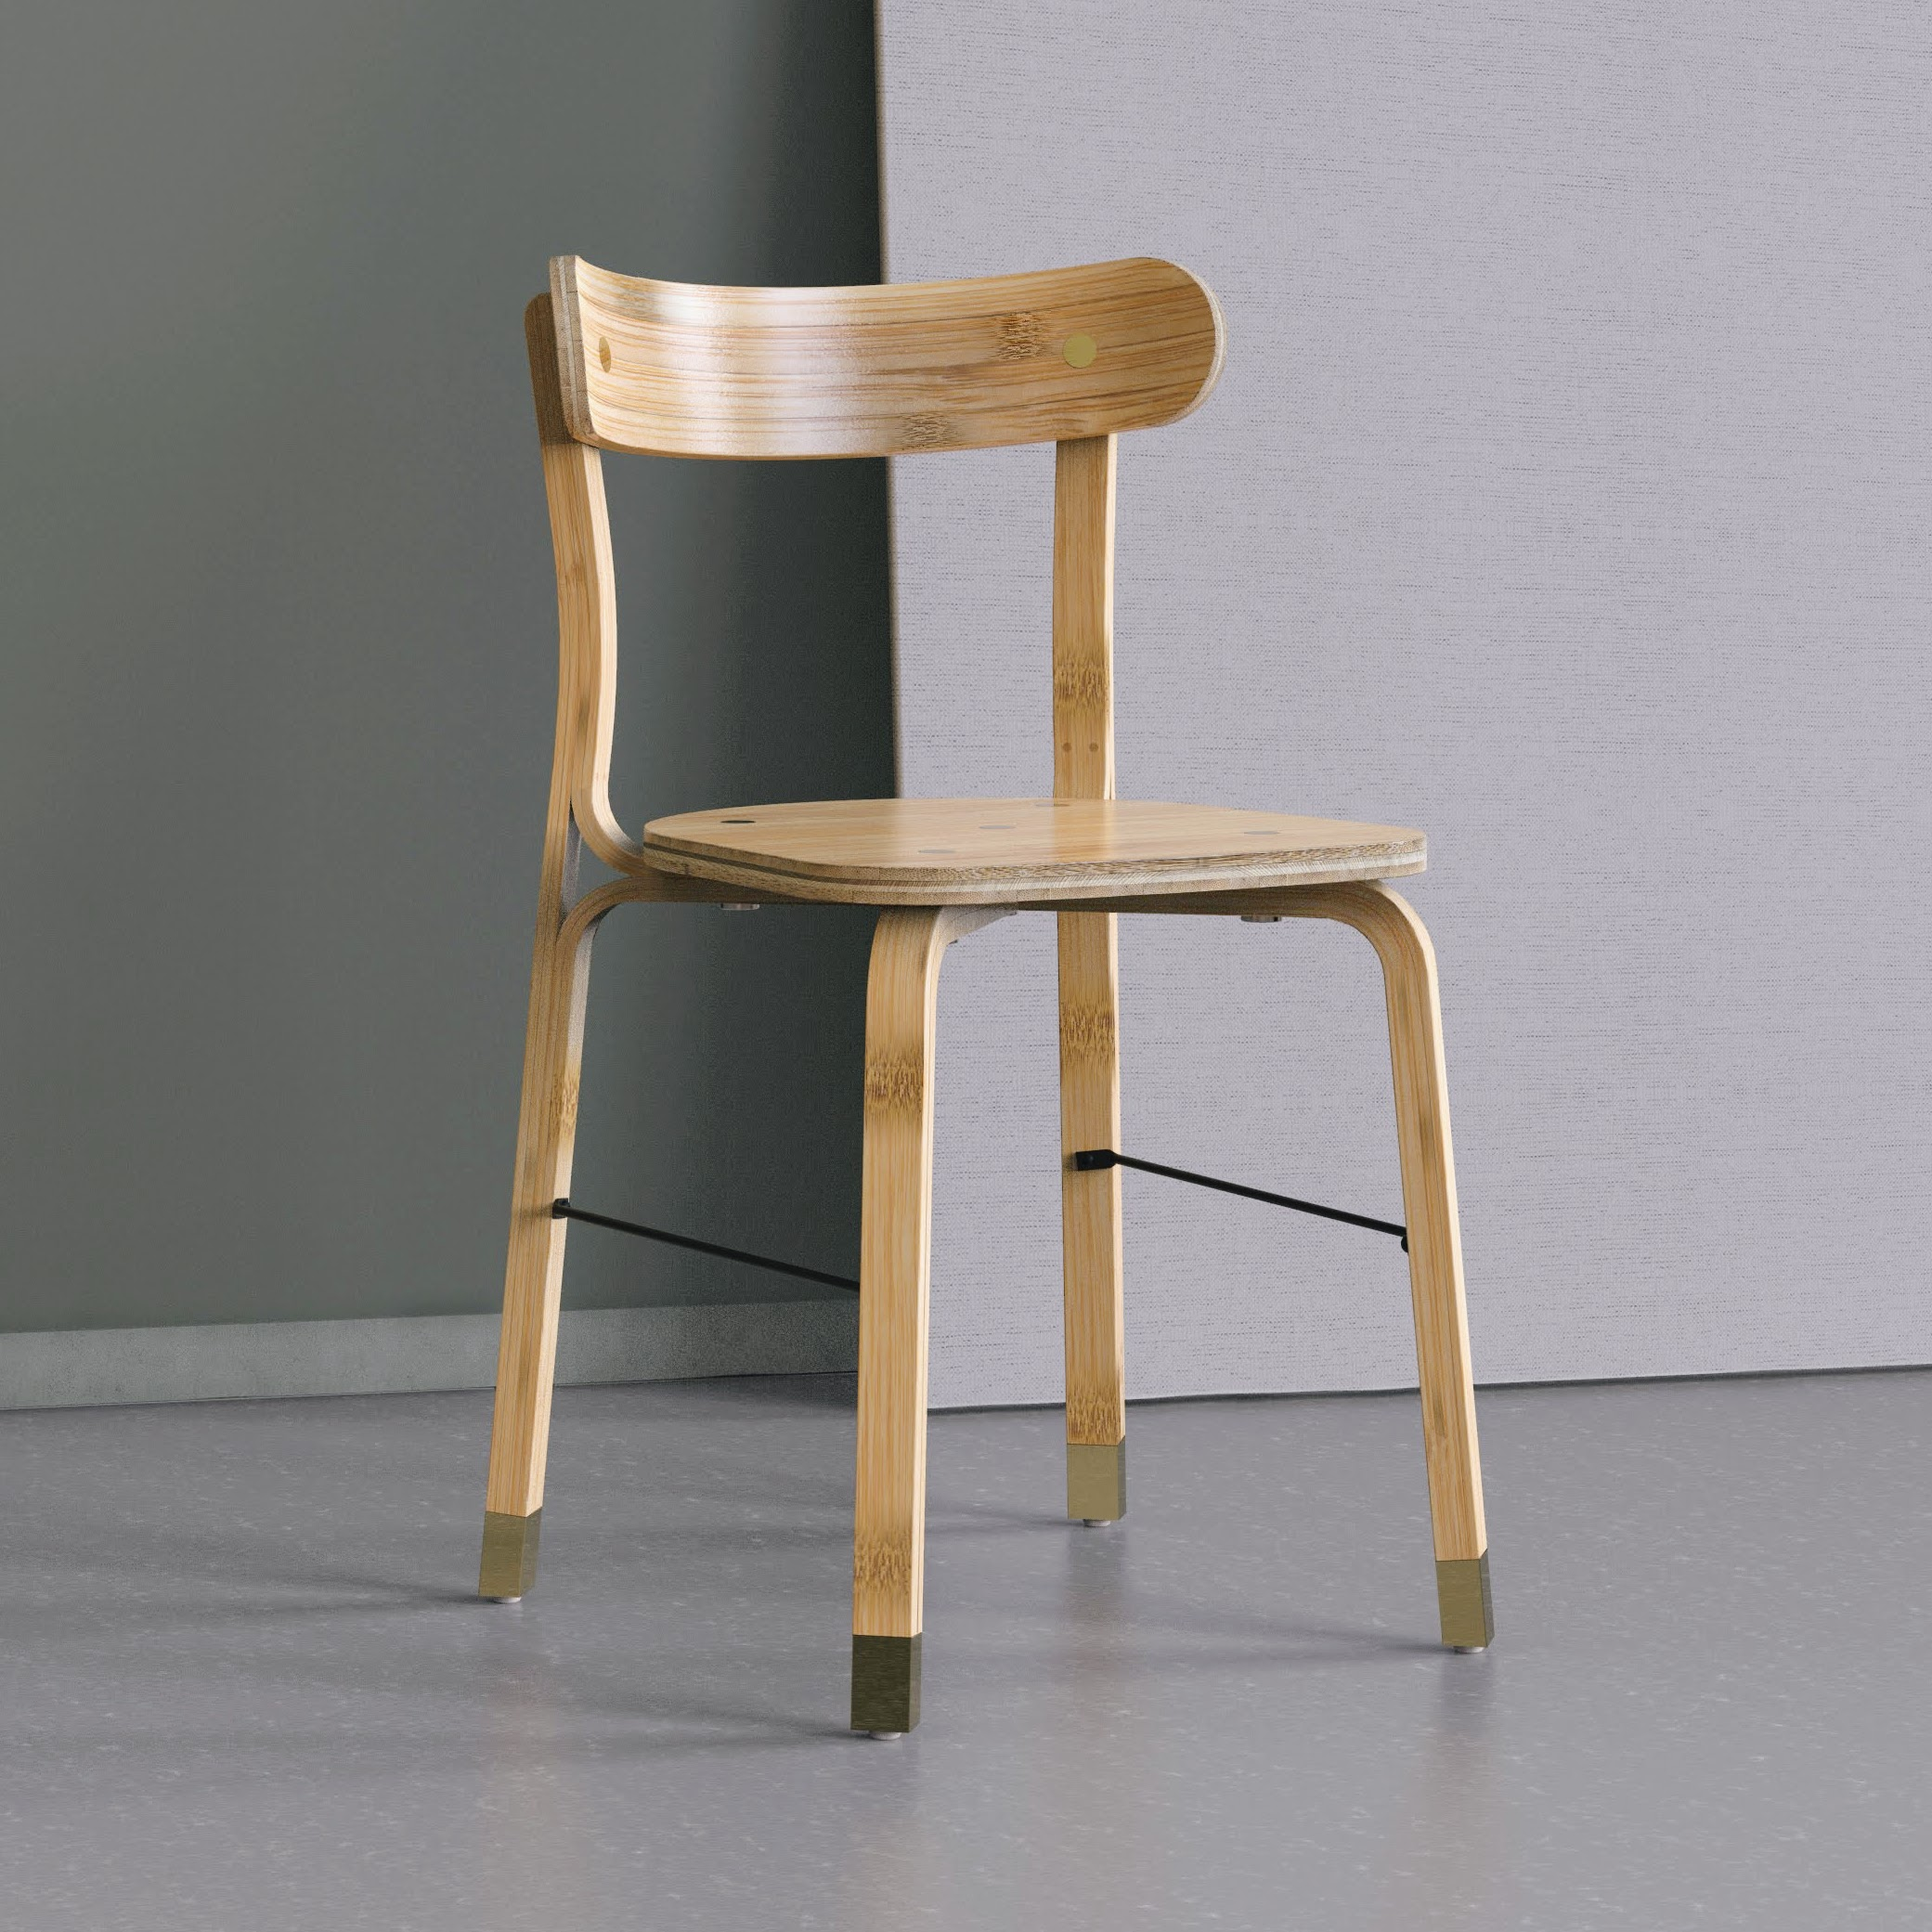 With keen attention to the finest details, mint design concept and meticulous craftsmanship, this sustainable Bamboo based Mocha Chair will be your perfect companion to enjoy coffee. The assembly of the chair is very easy. The idea behind is designed by keeping in mind that the user can easily assemble it by using a simple Allen Key Tool. The bolts can be simply inserted into the holes in the legs and can be further tightened onto the seat pan with the help of an Allen Key. And backrest can also be assembled in the same manner.